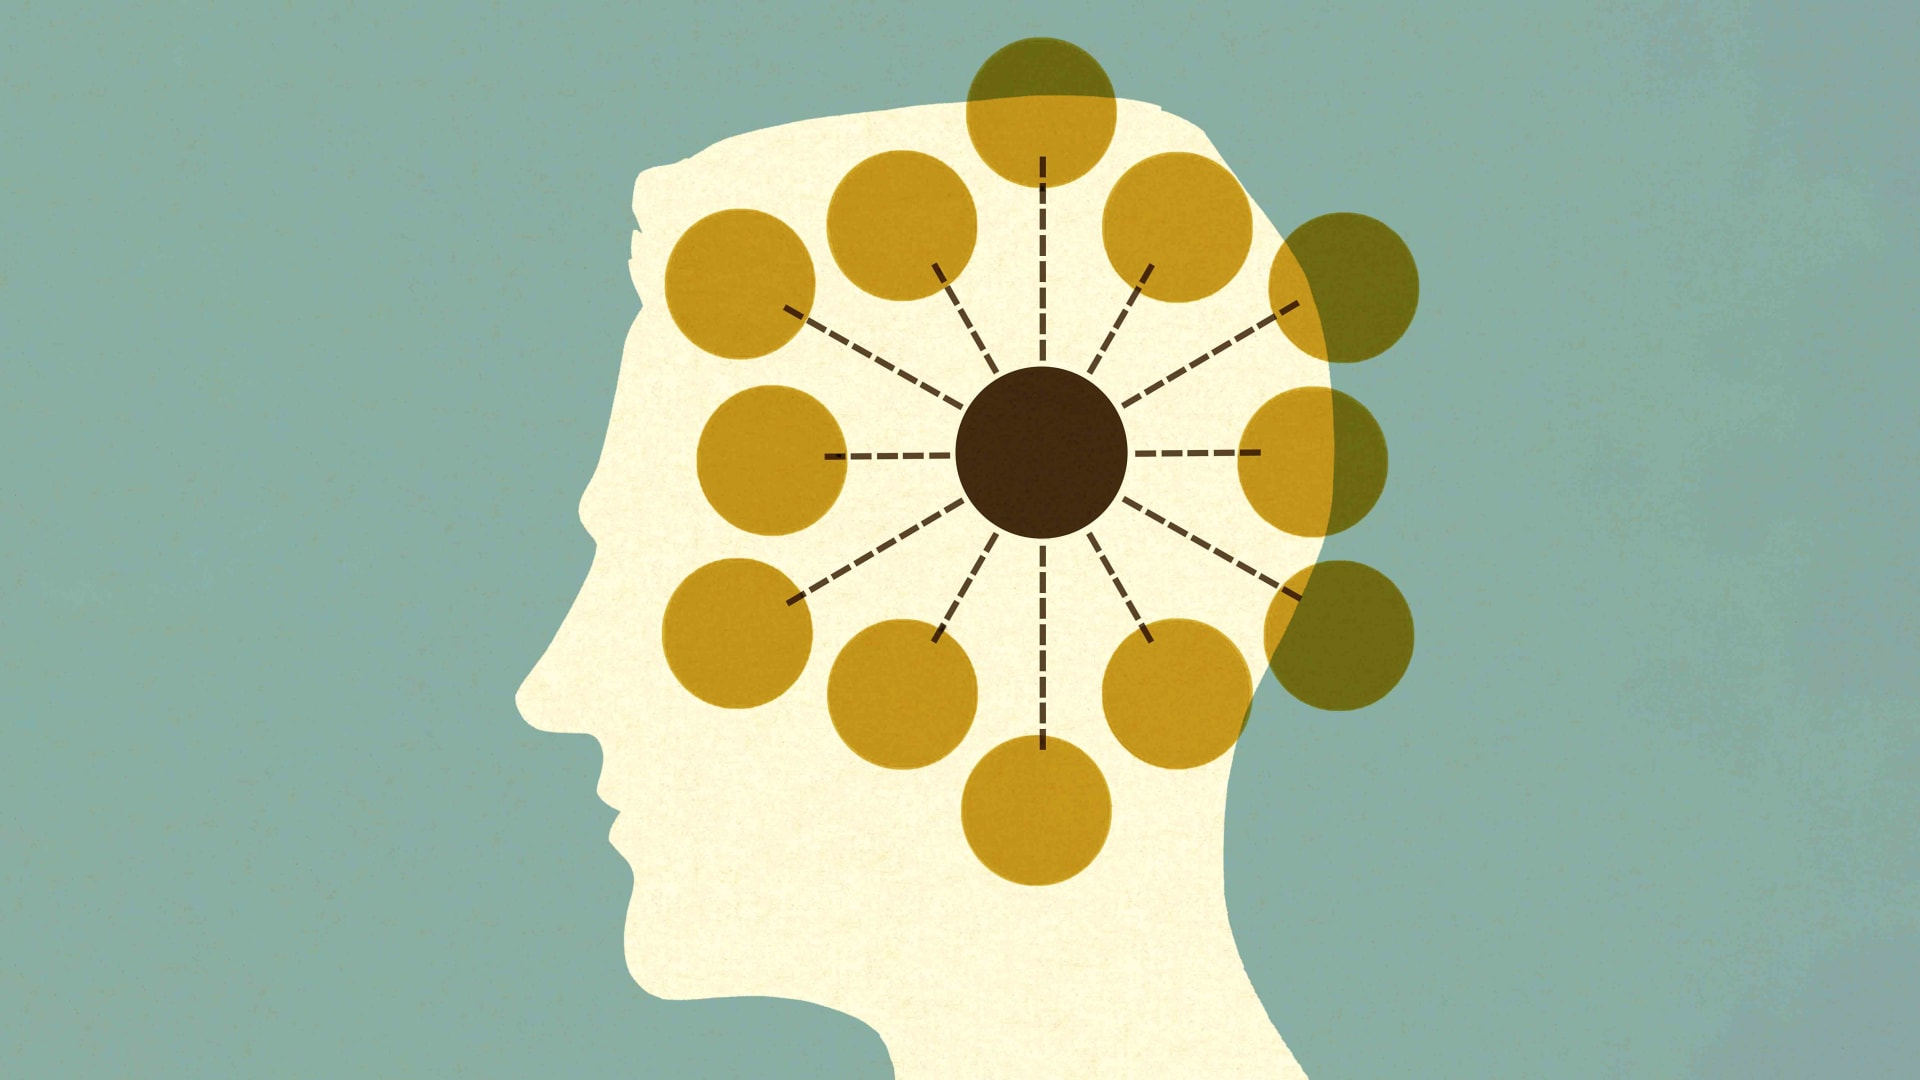 Want to Make Smarter Decisions? This Test Can Dramatically Improve Your Judgment and Reasoning